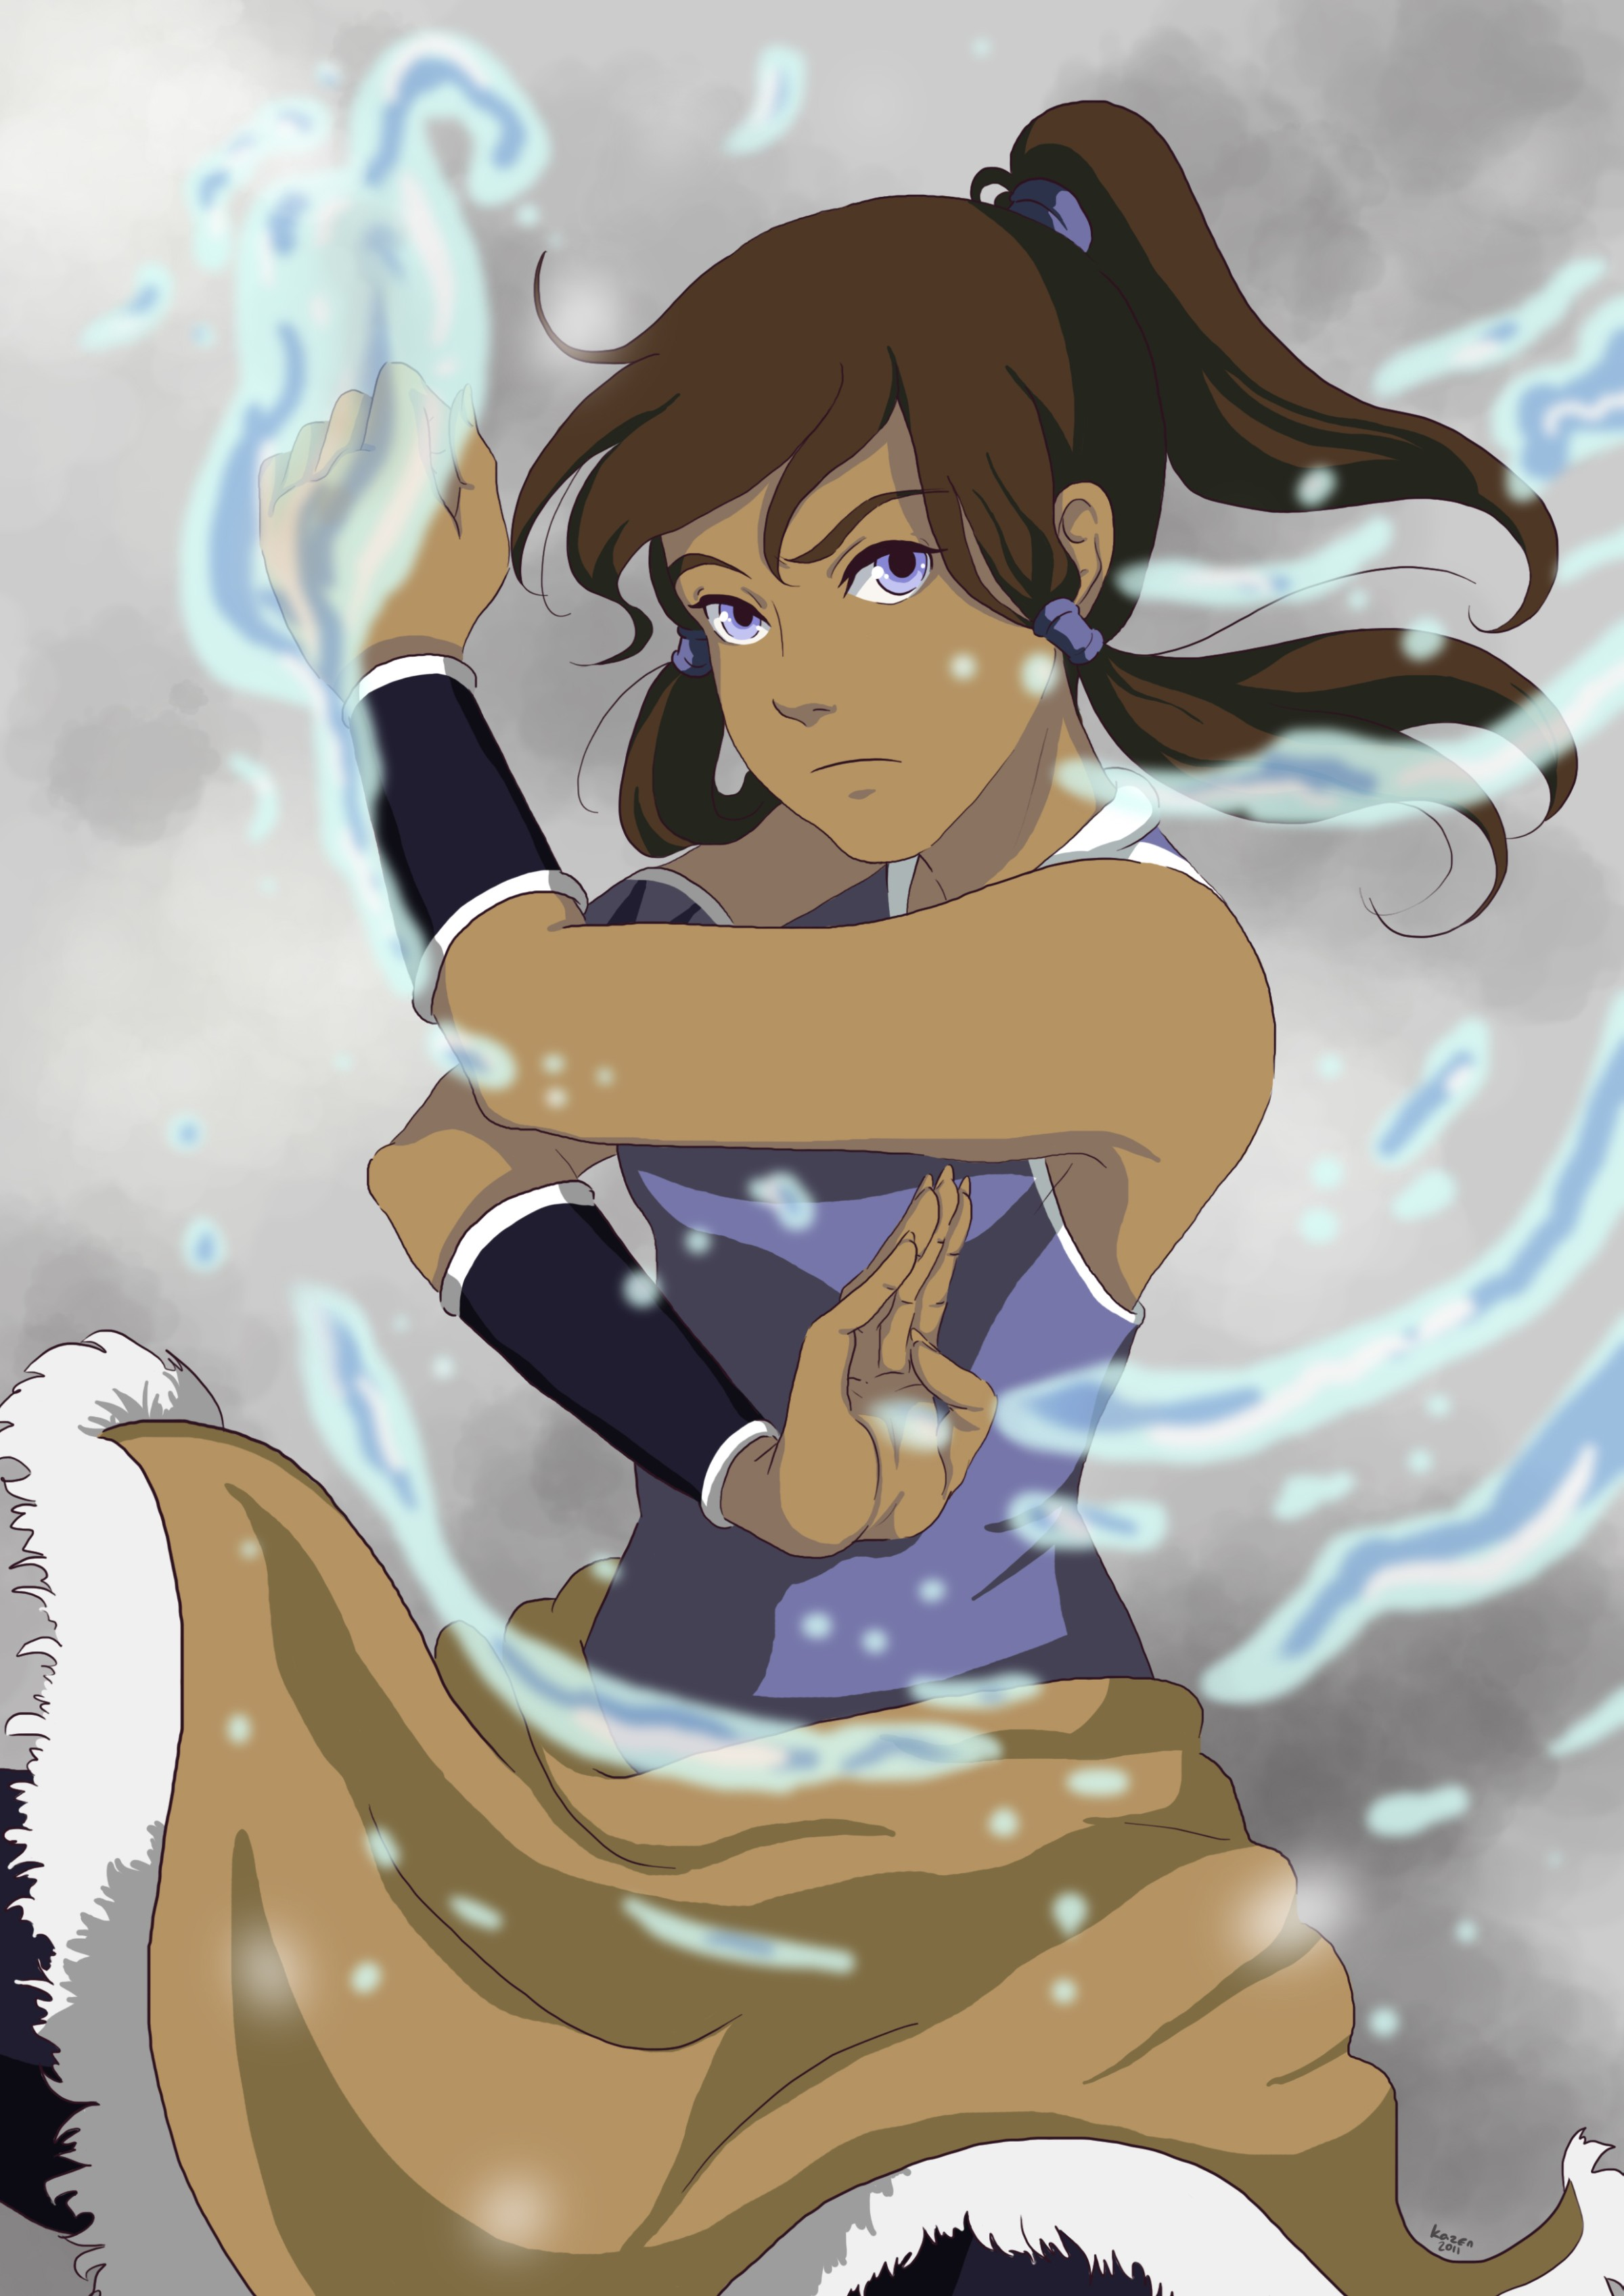 Аватар: Легенда о Корре / The Last Airbender: The Legend of Korra